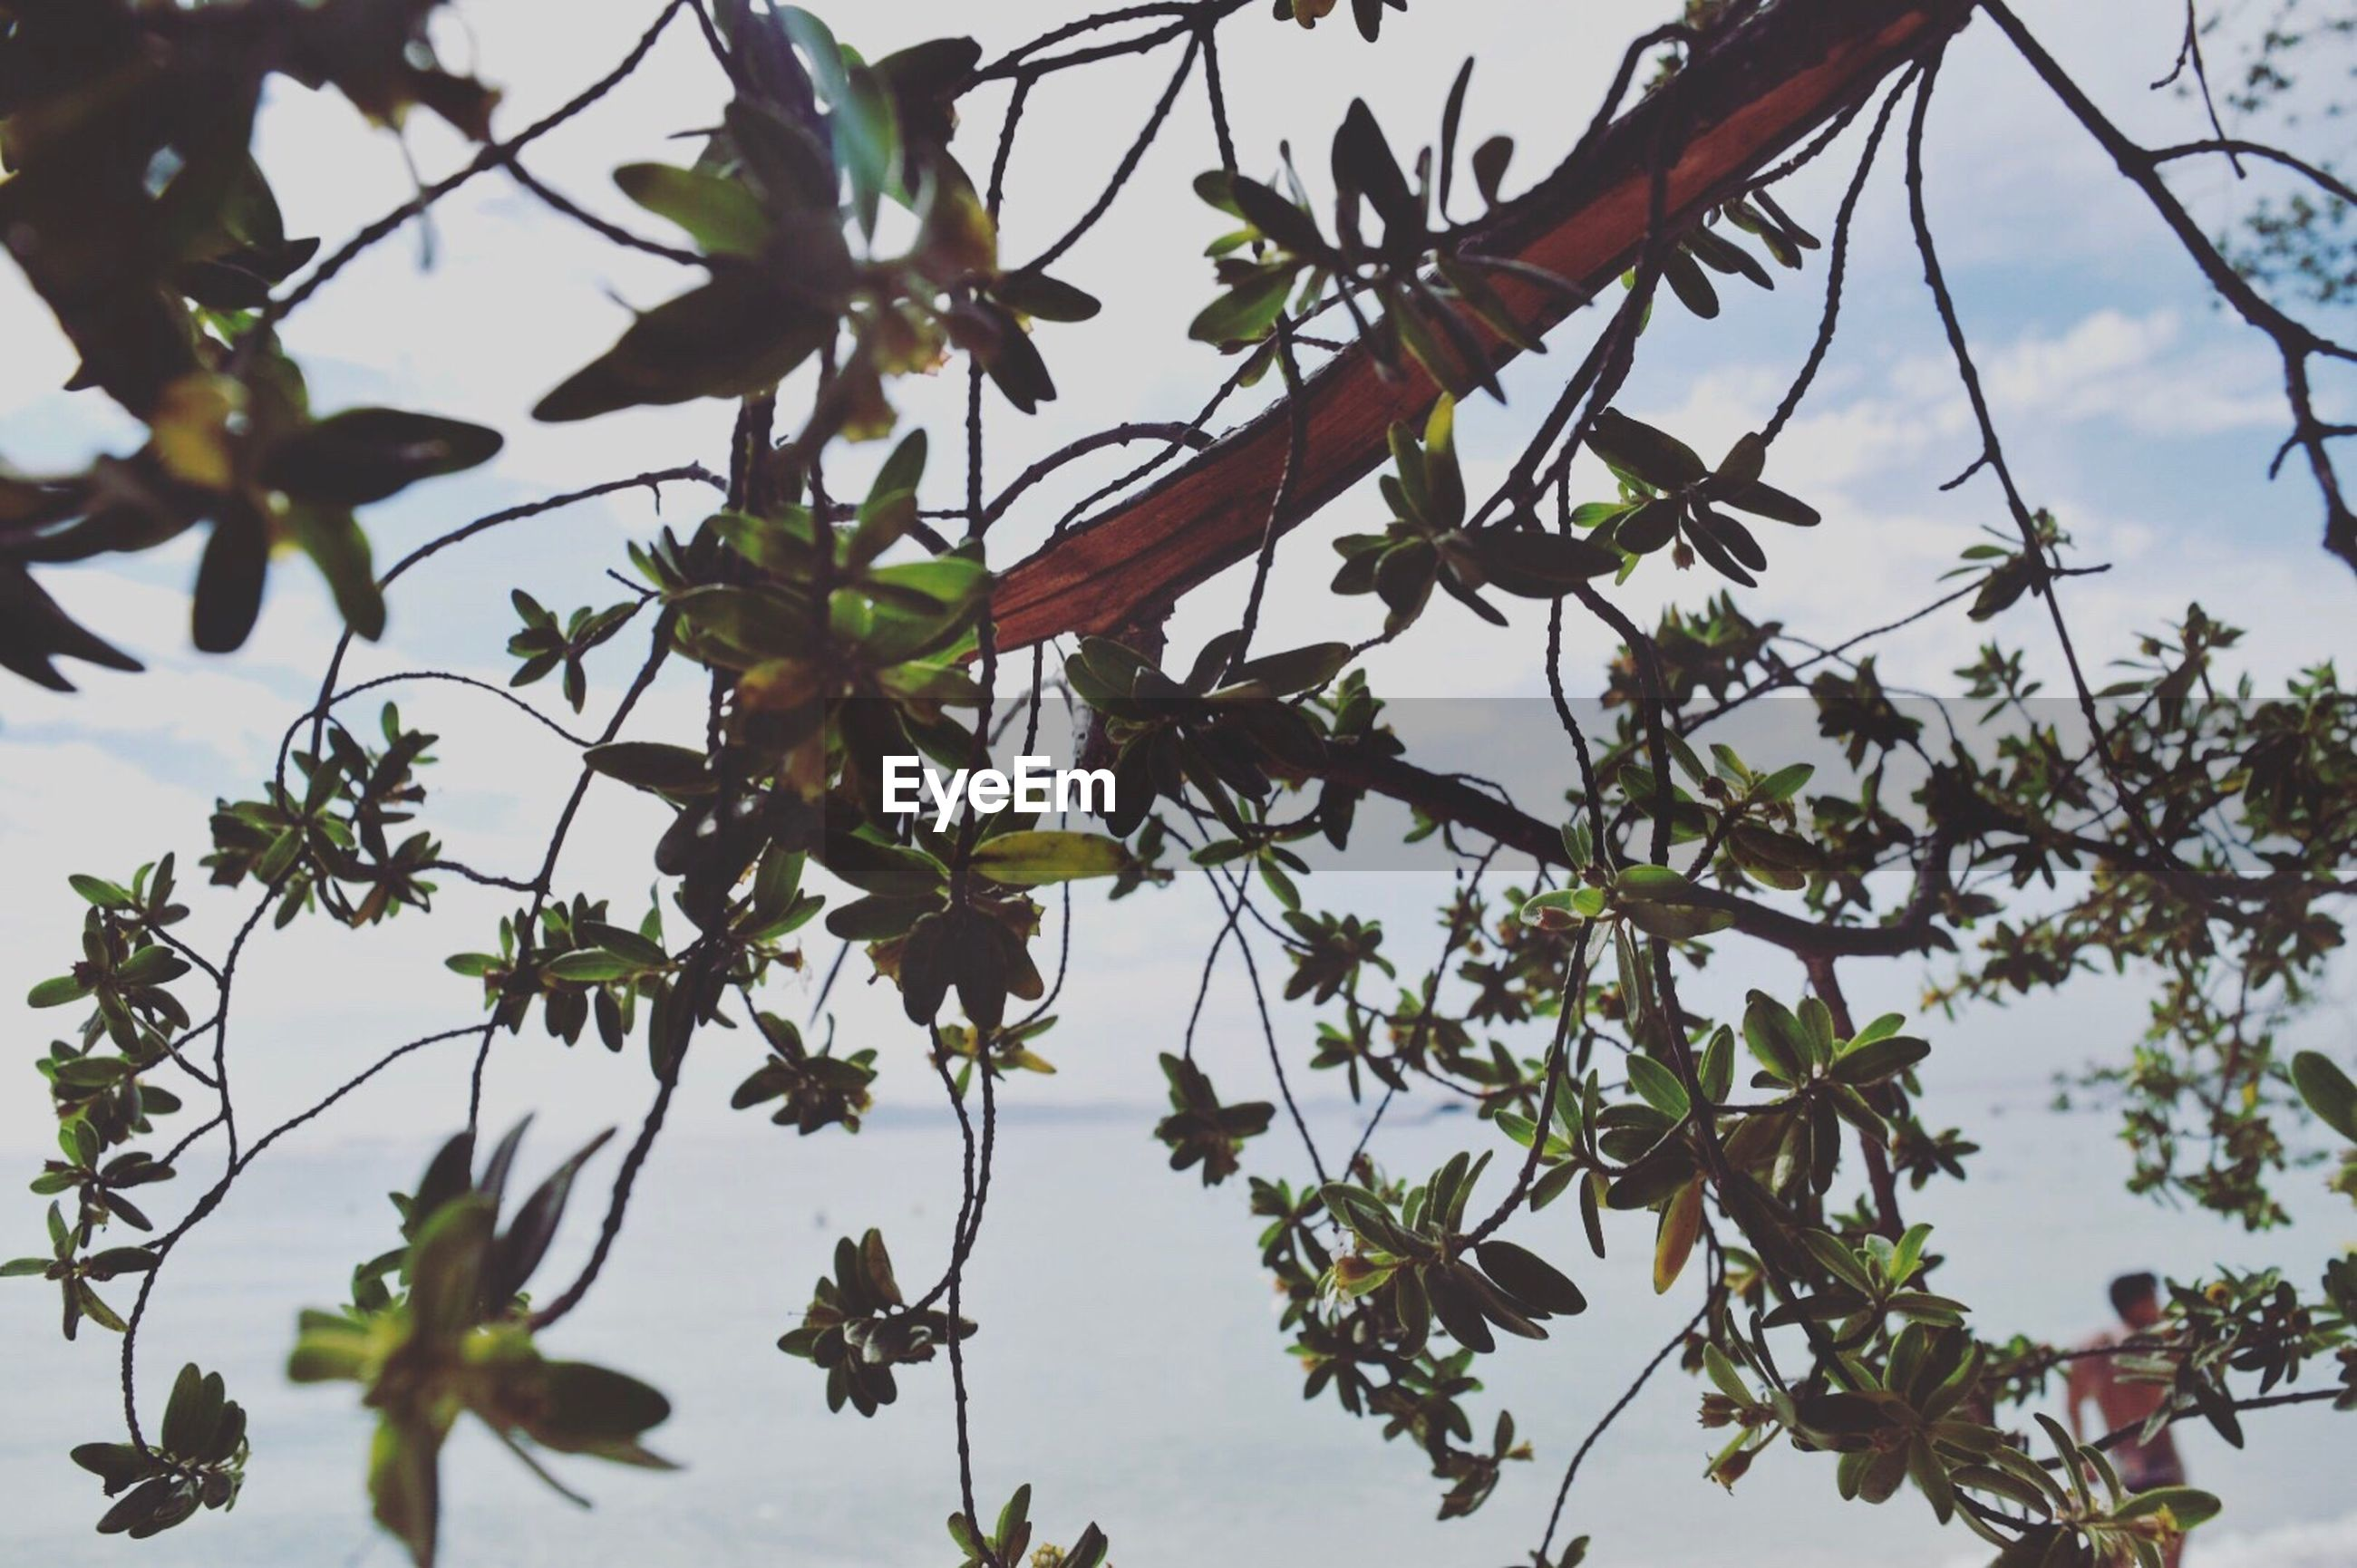 growth, nature, tree, no people, branch, leaf, low angle view, day, beauty in nature, outdoors, freshness, close-up, sky, food, olive tree